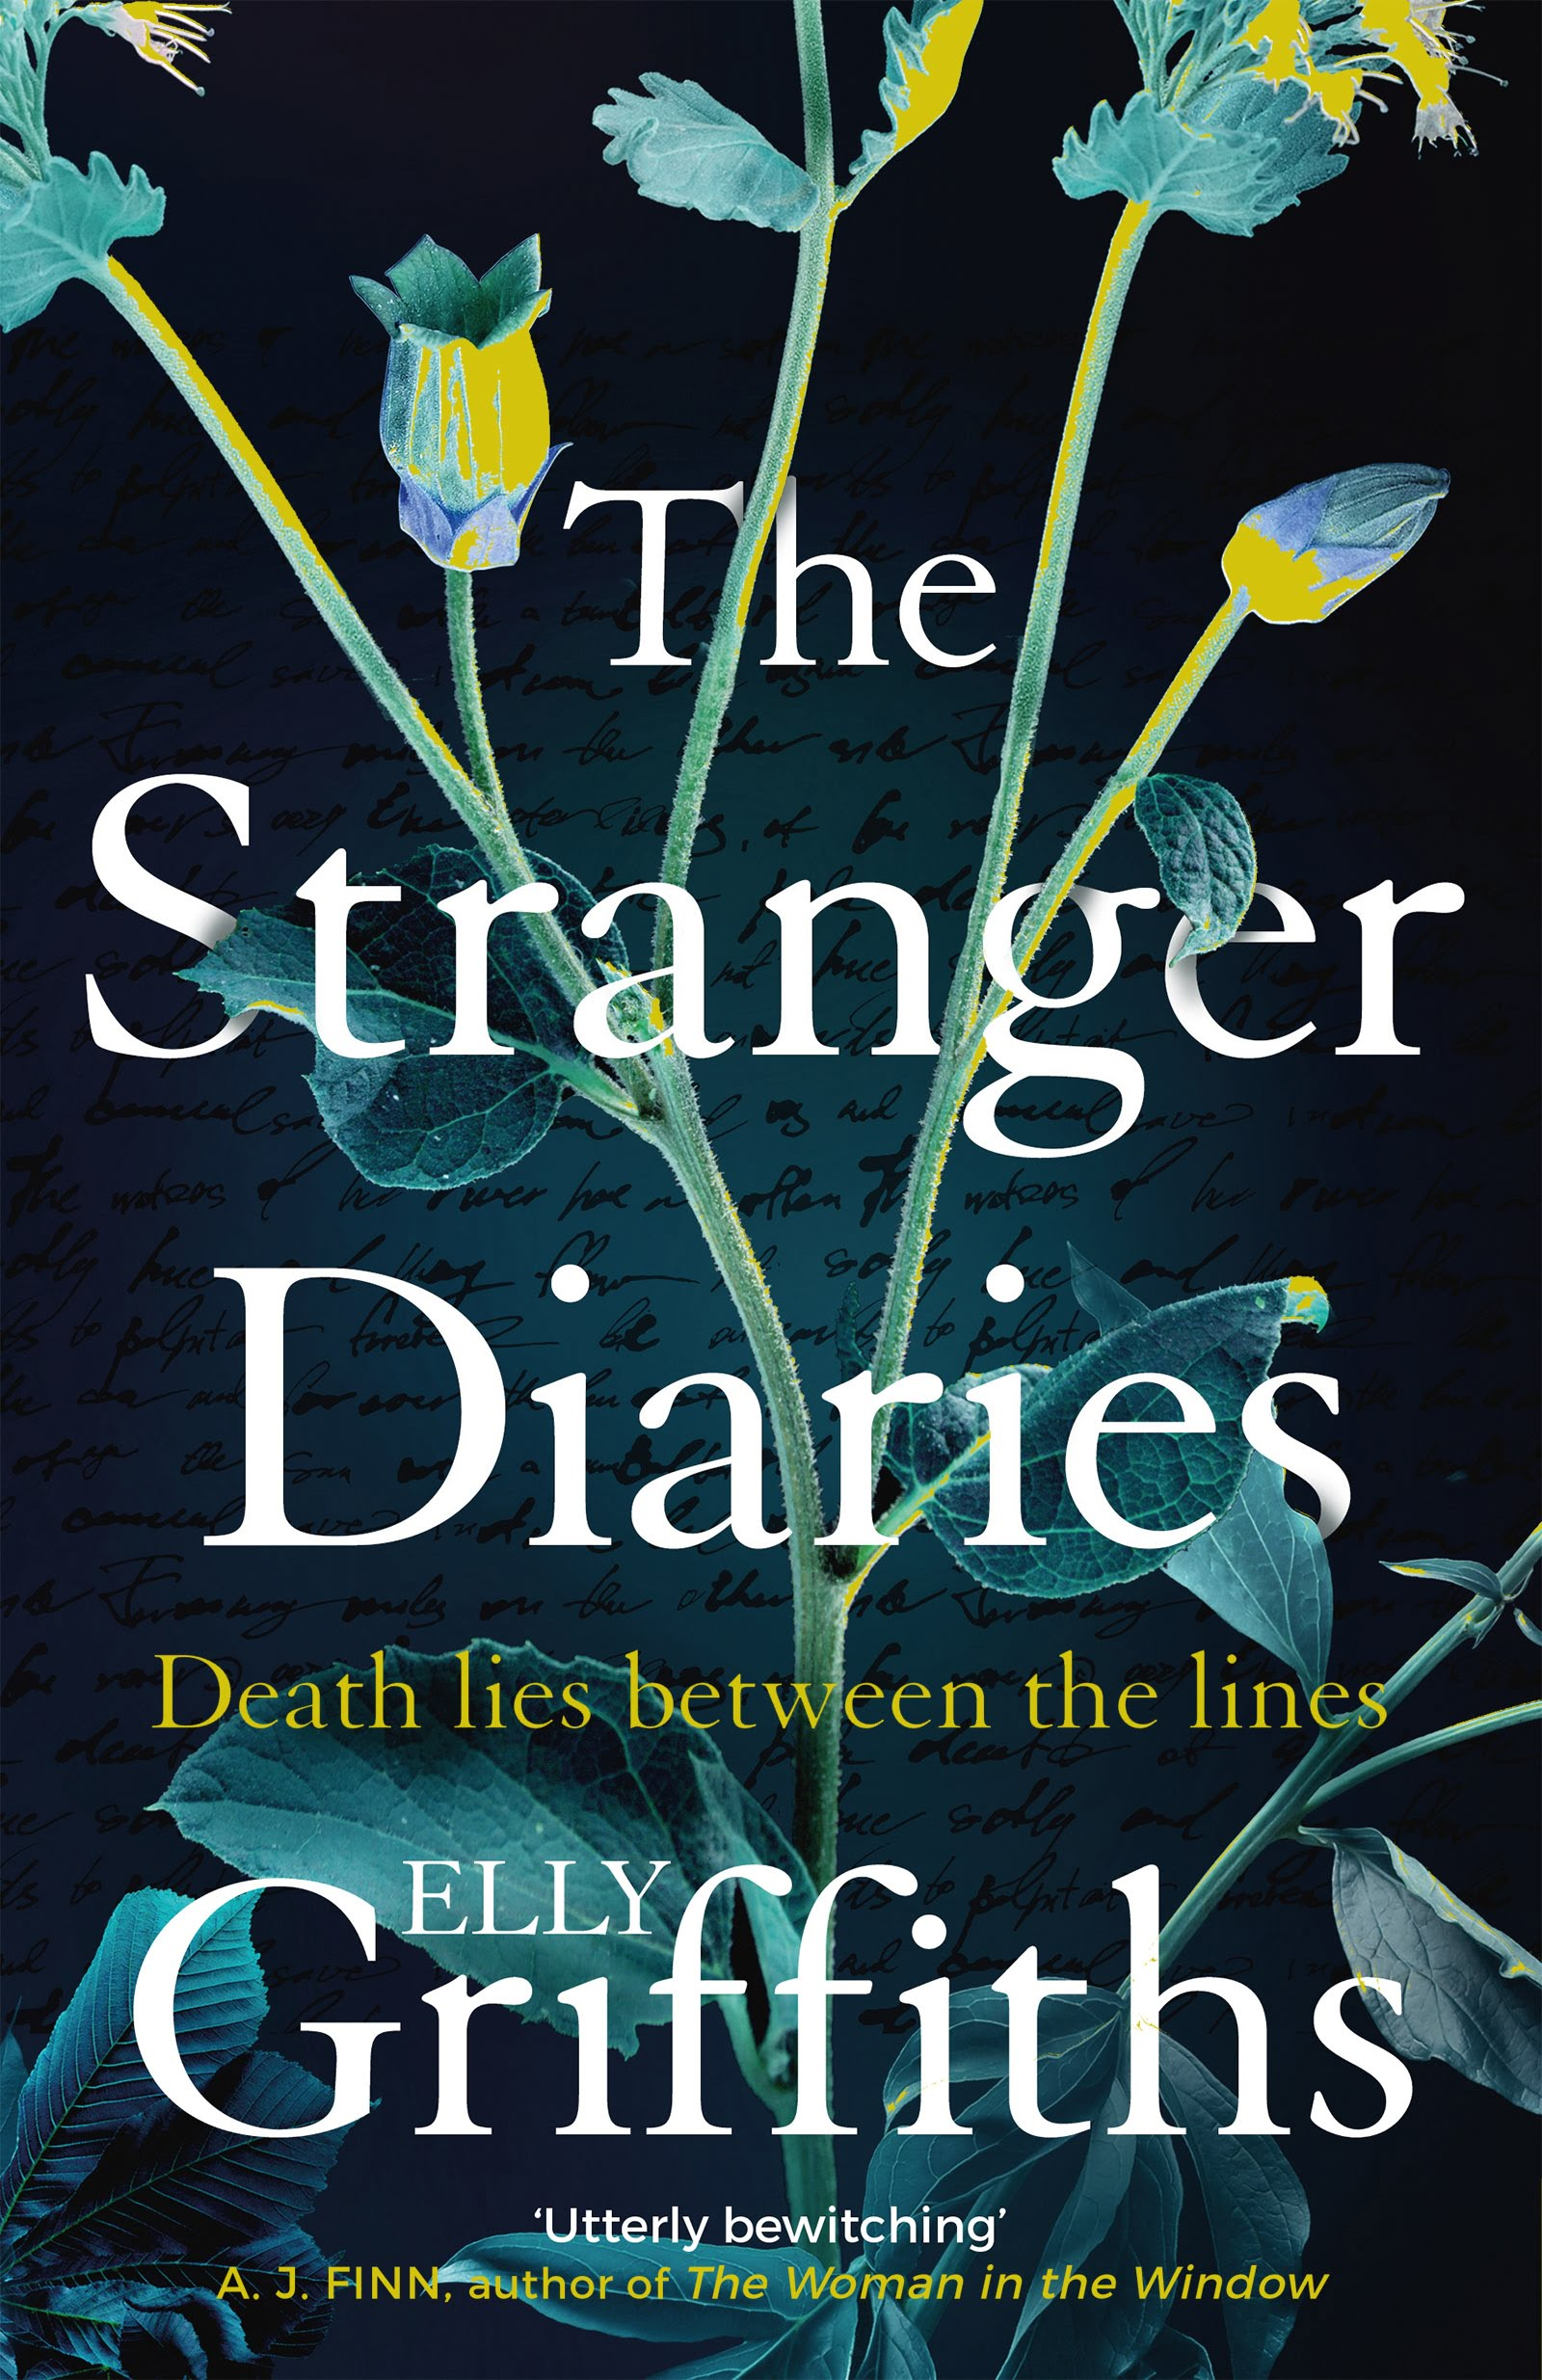 The Stranger Diaries by Elly Griffiths | Book Review #TheStrangerDiaries